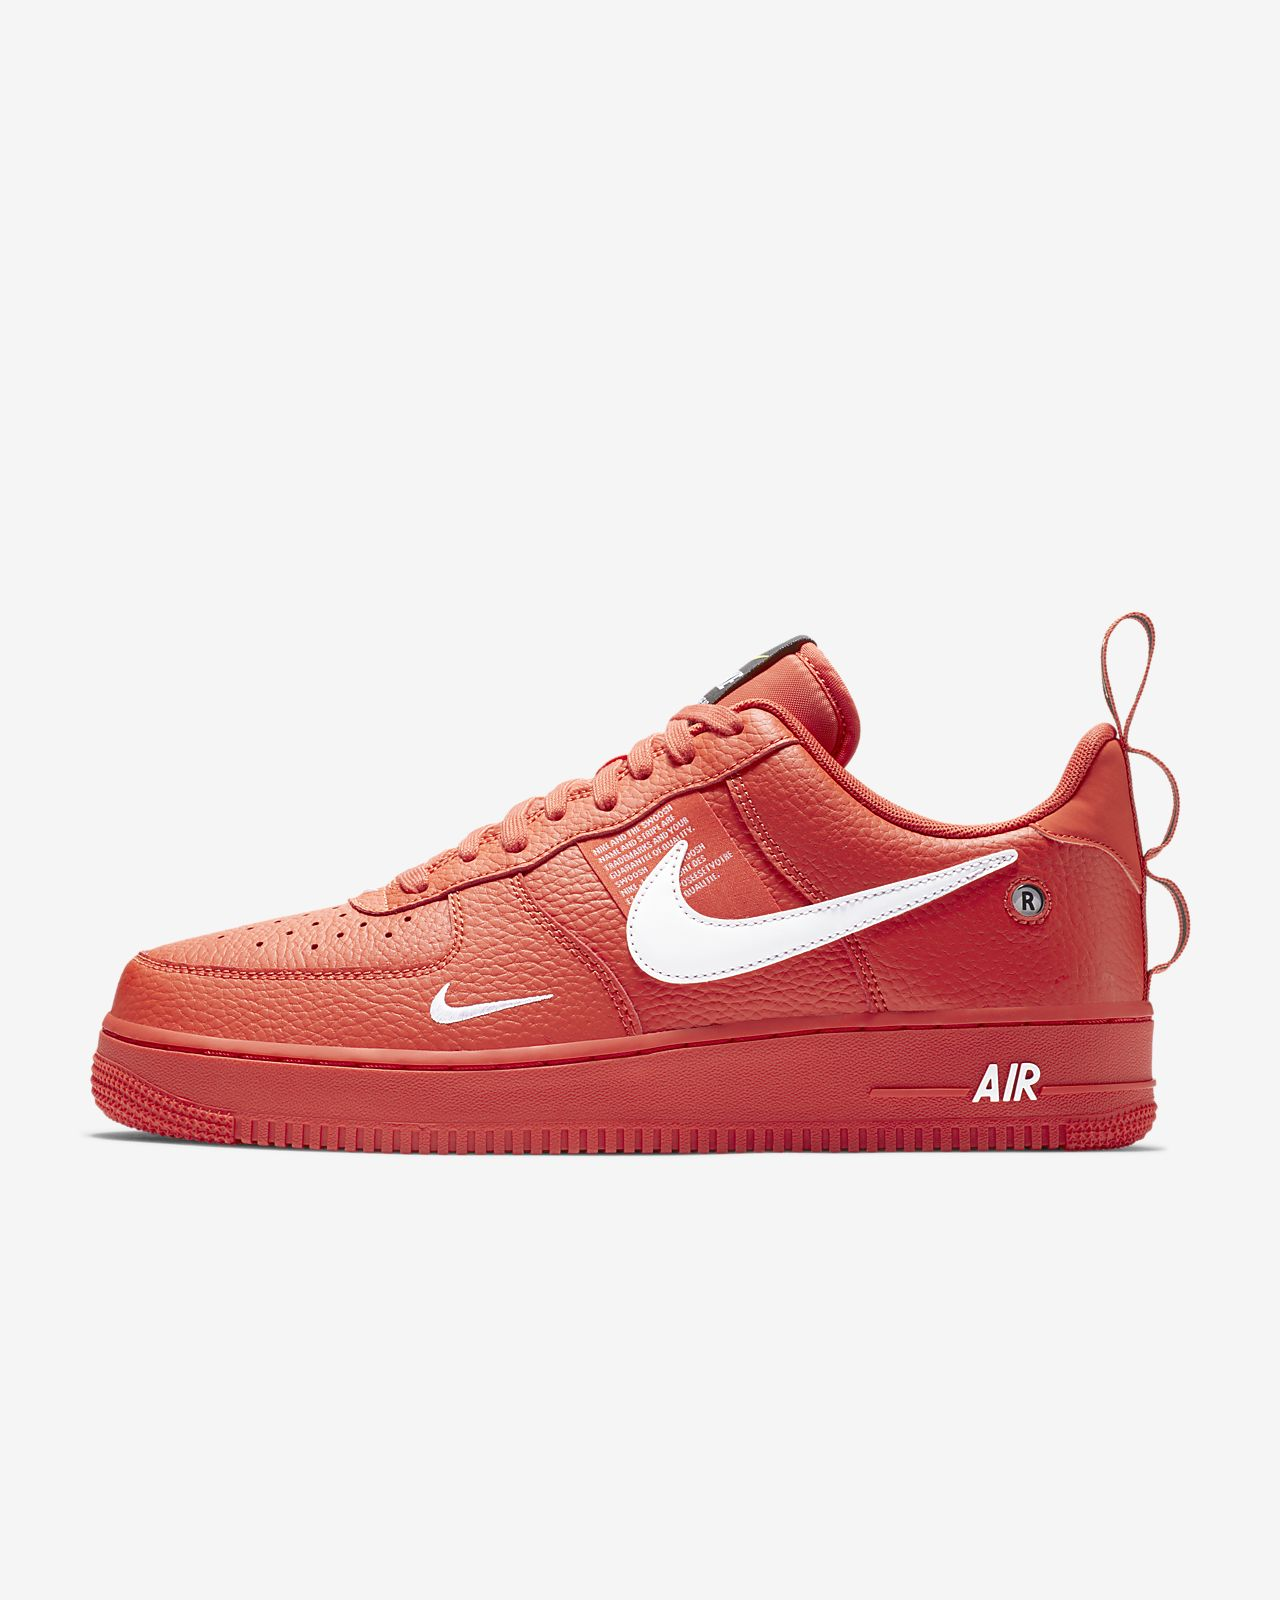 faa3f0aed6715 Nike Air Force 1  07 LV8 Utility Men s Shoe. Nike.com GB